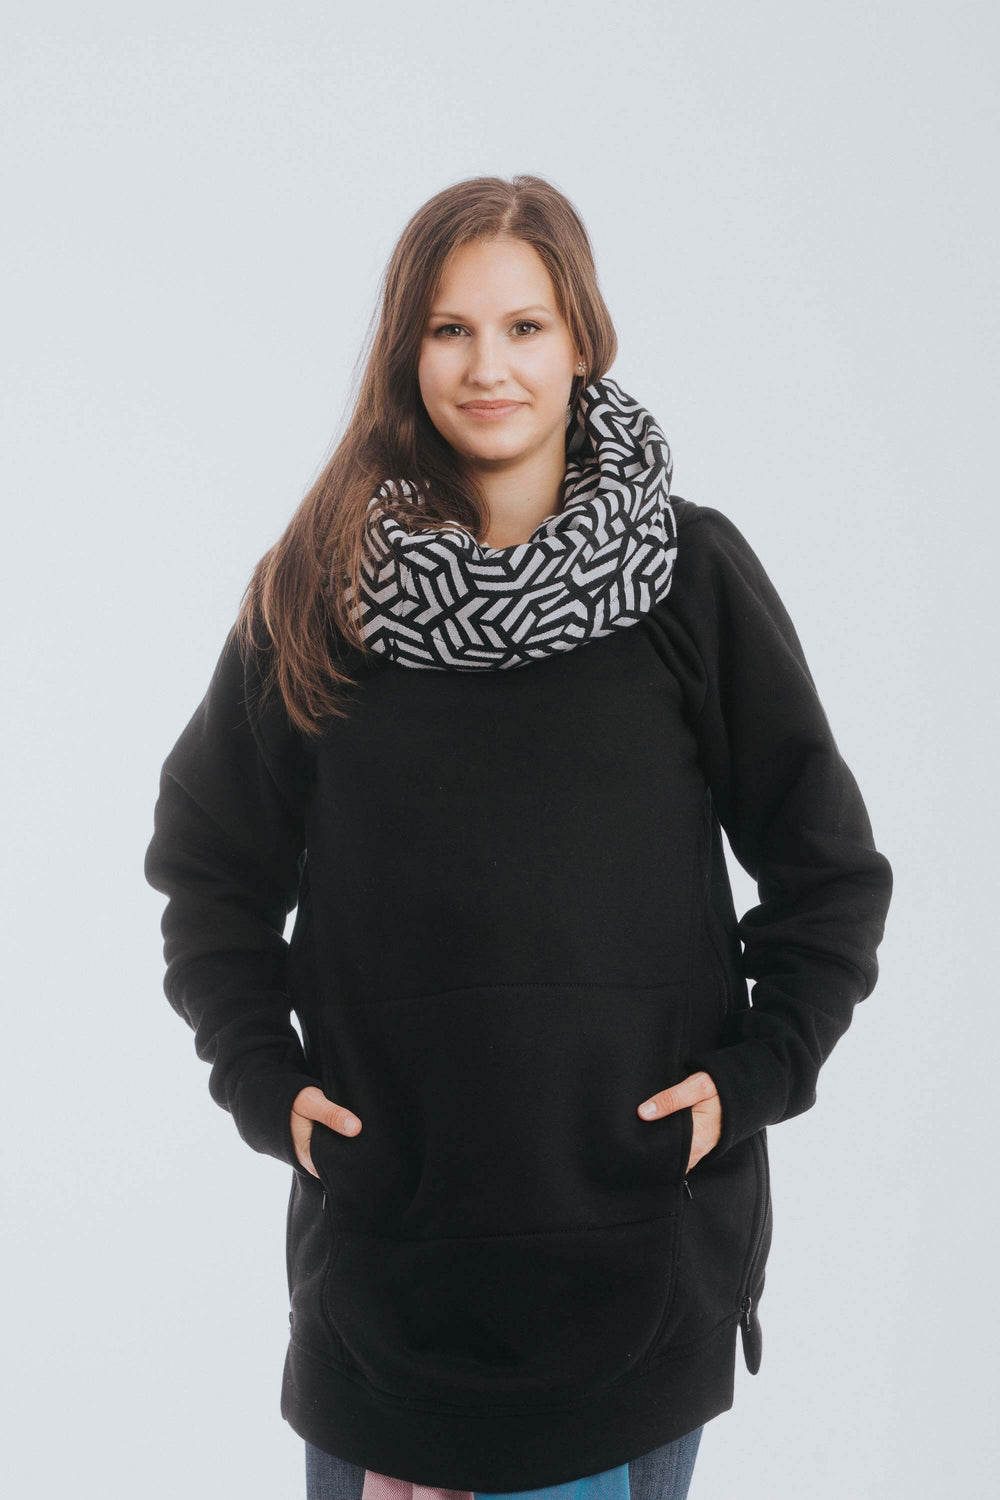 Black and White Hematite Lenny Lamb babywearing sweater